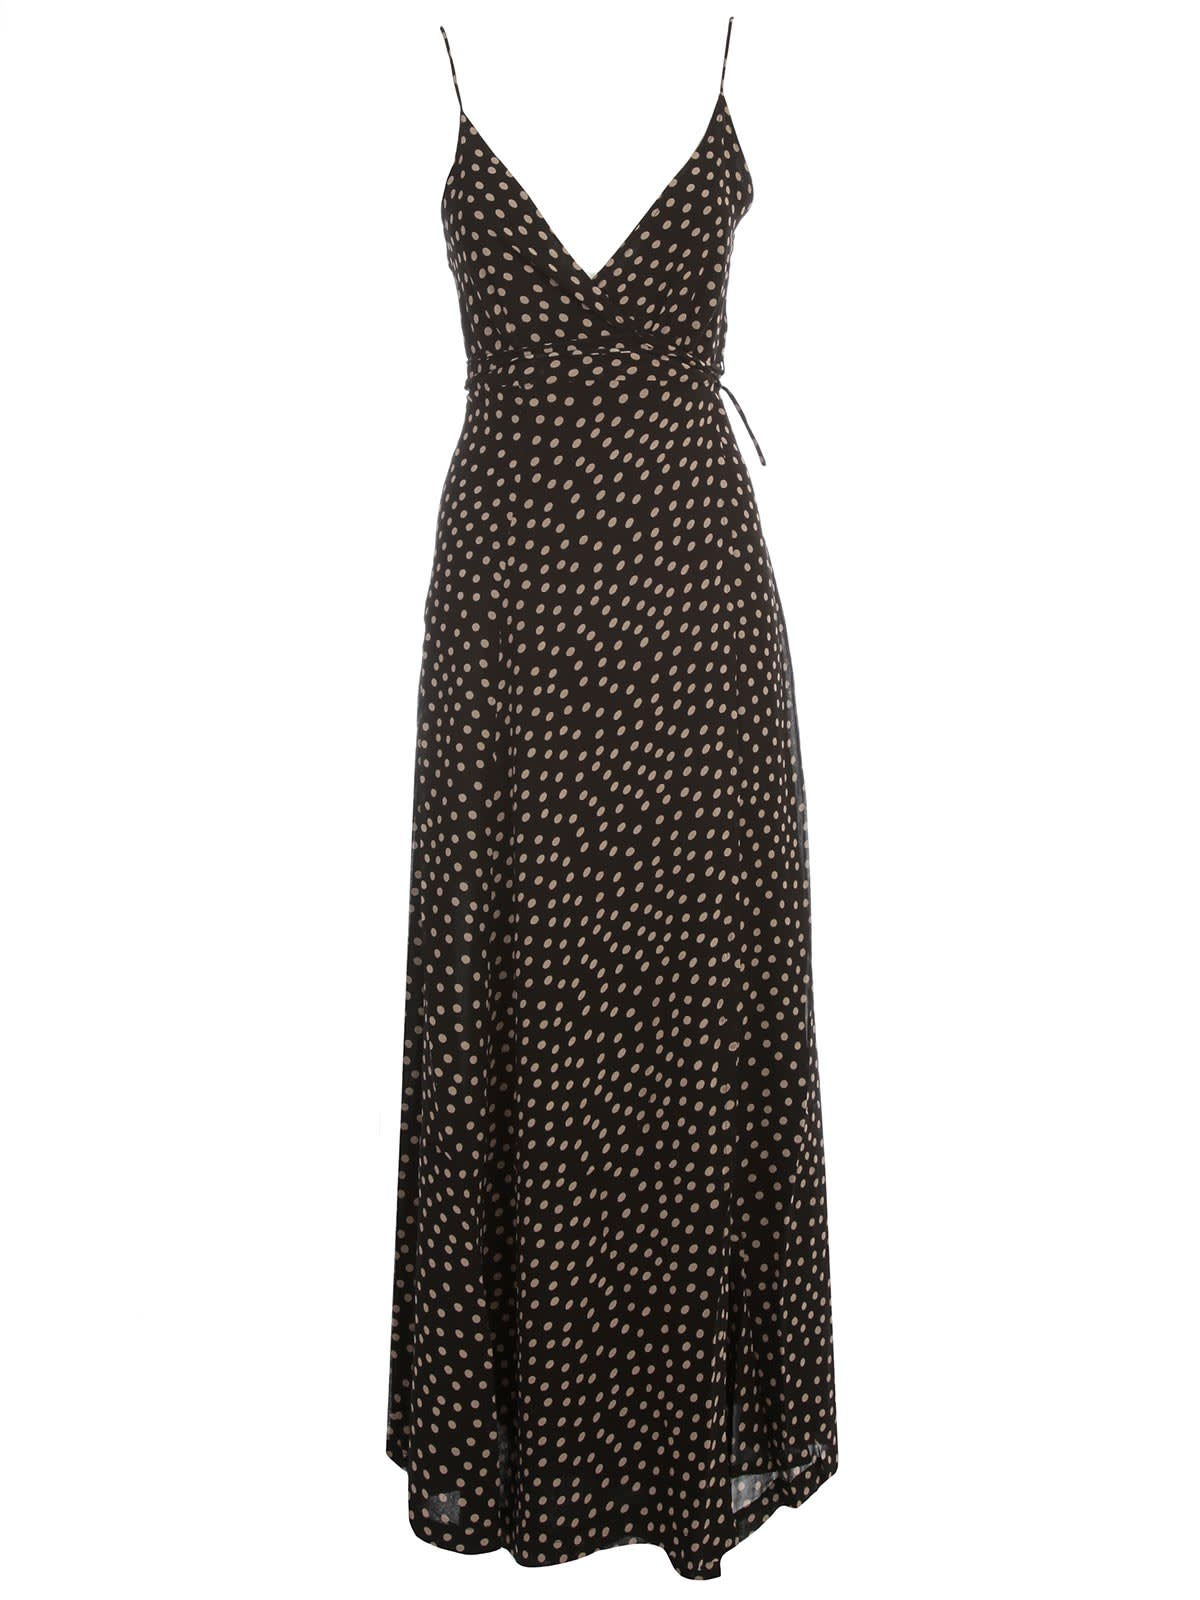 Buy Ganni Printed Georgette Dress Thin Strap online, shop Ganni with free shipping